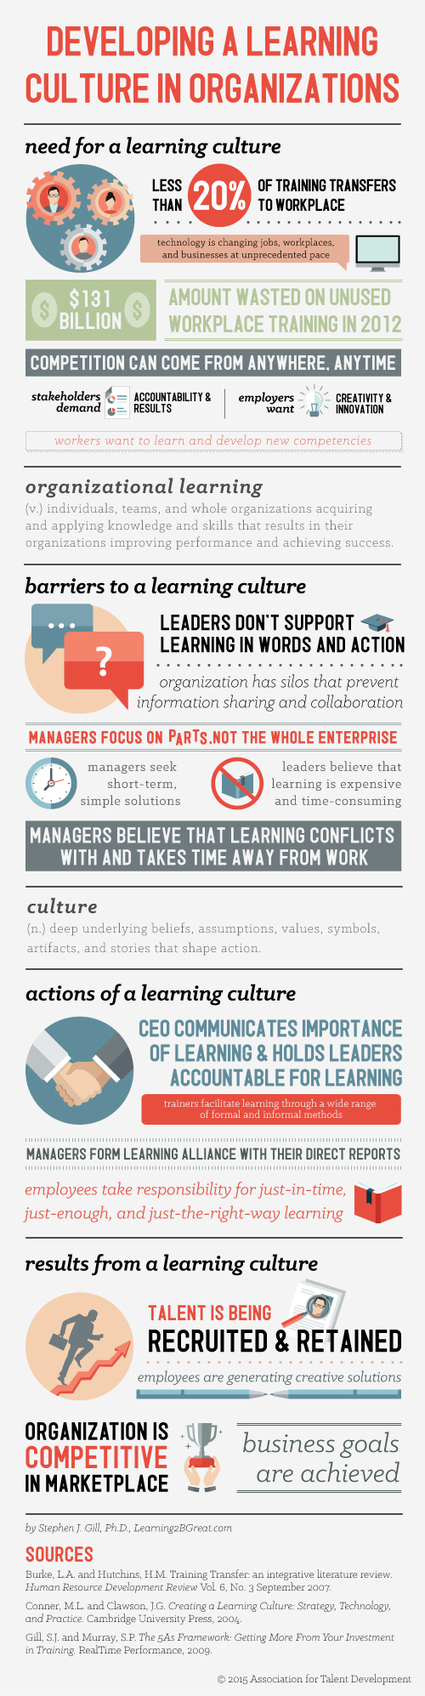 Developing a Learning Culture in Organizations Infographic - e-Learning Infographics | Learning Organizations | Scoop.it